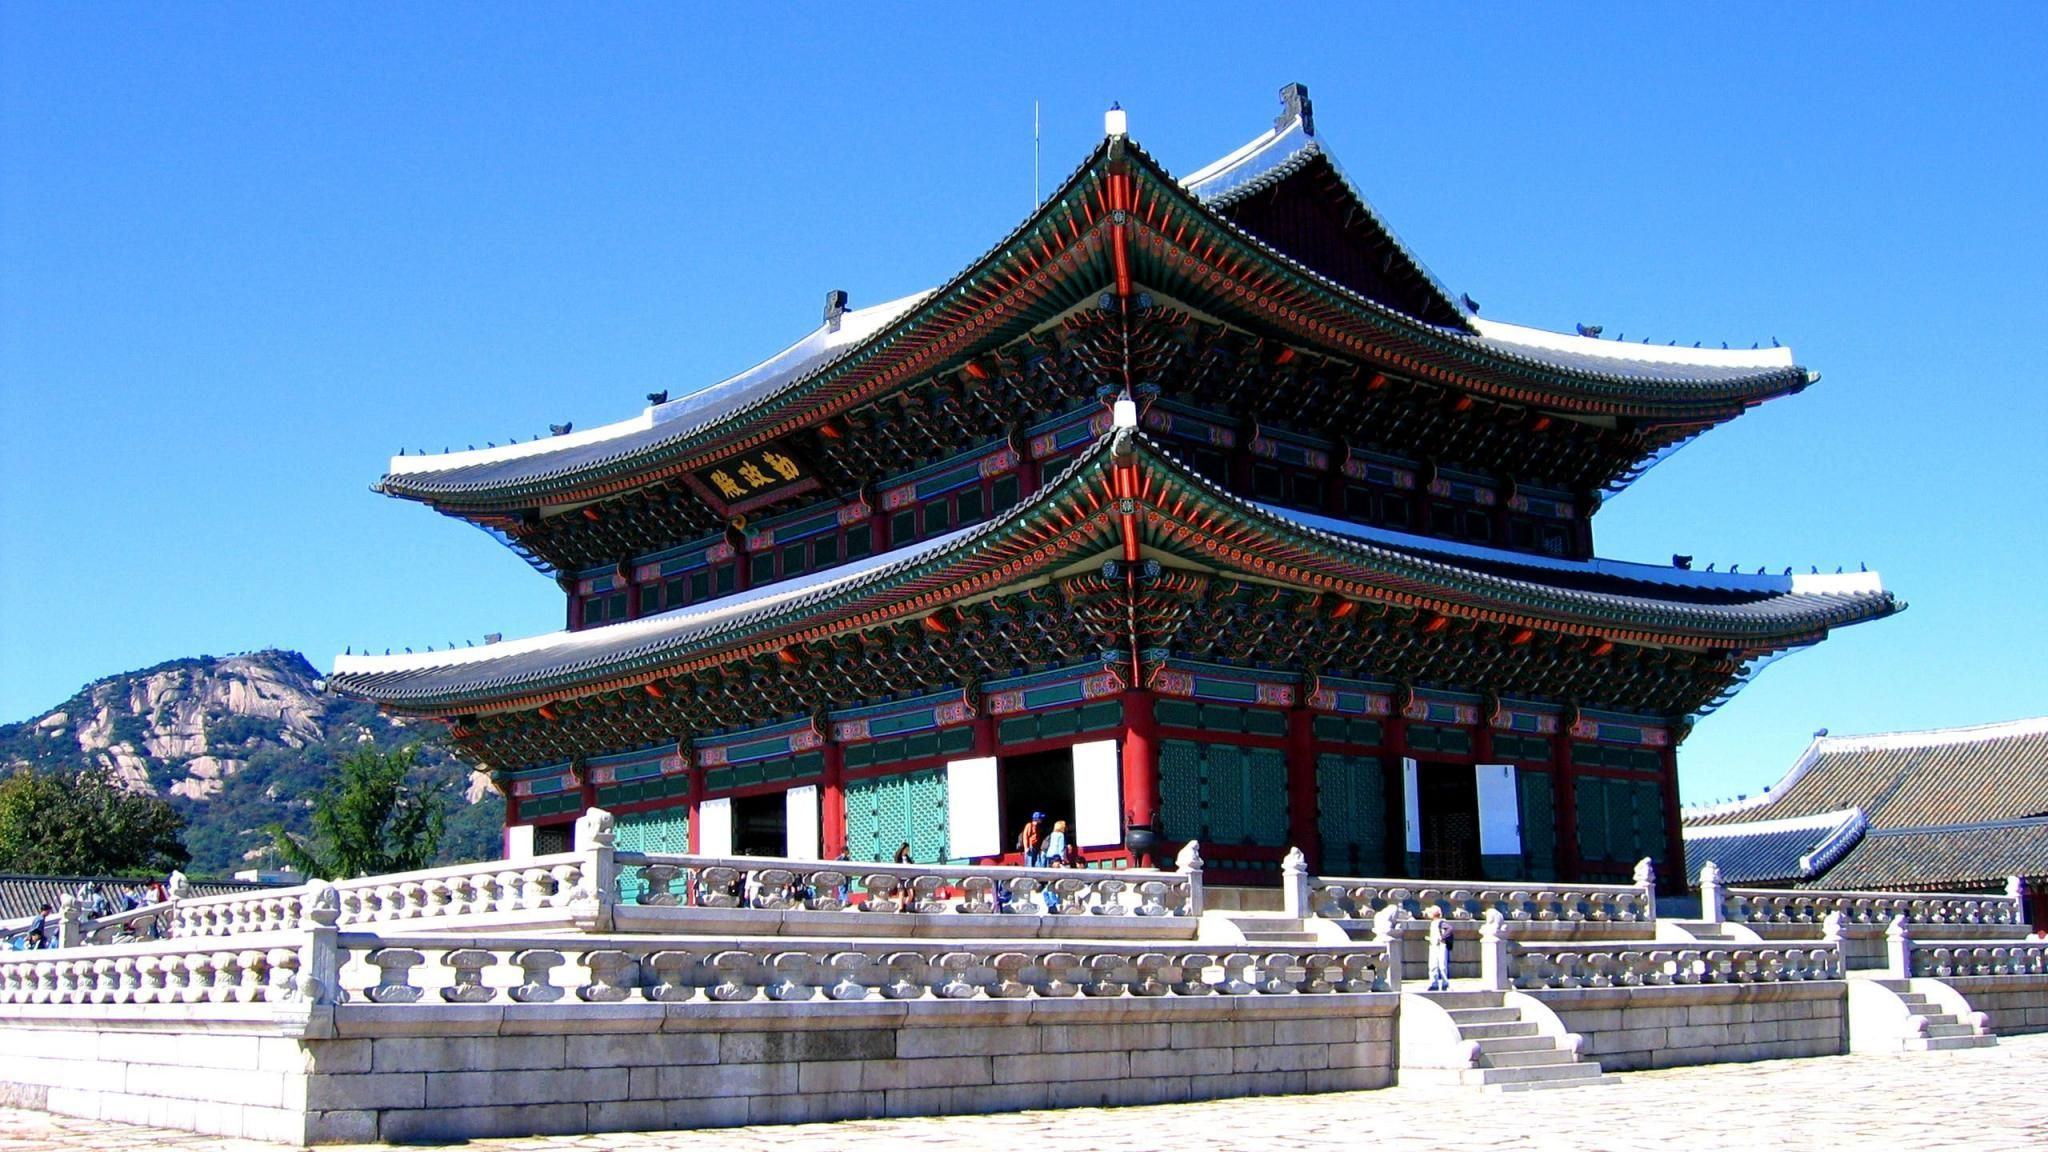 South Korea Palace Wallpapers - Top Free South Korea Palace ...